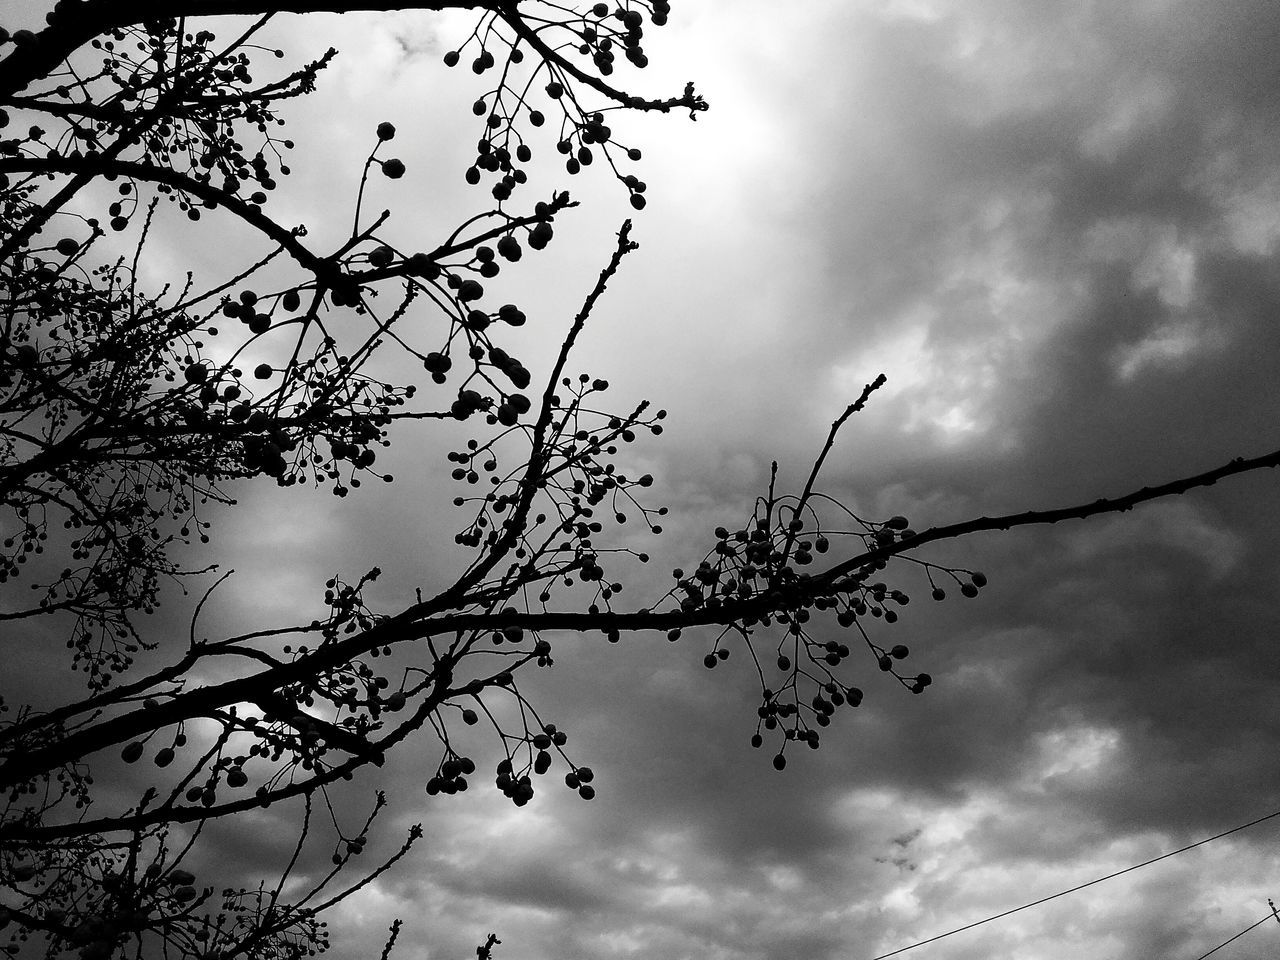 Tree Nature Sky Cloud - Sky Branch Low Angle View No People Beauty In Nature Skydark